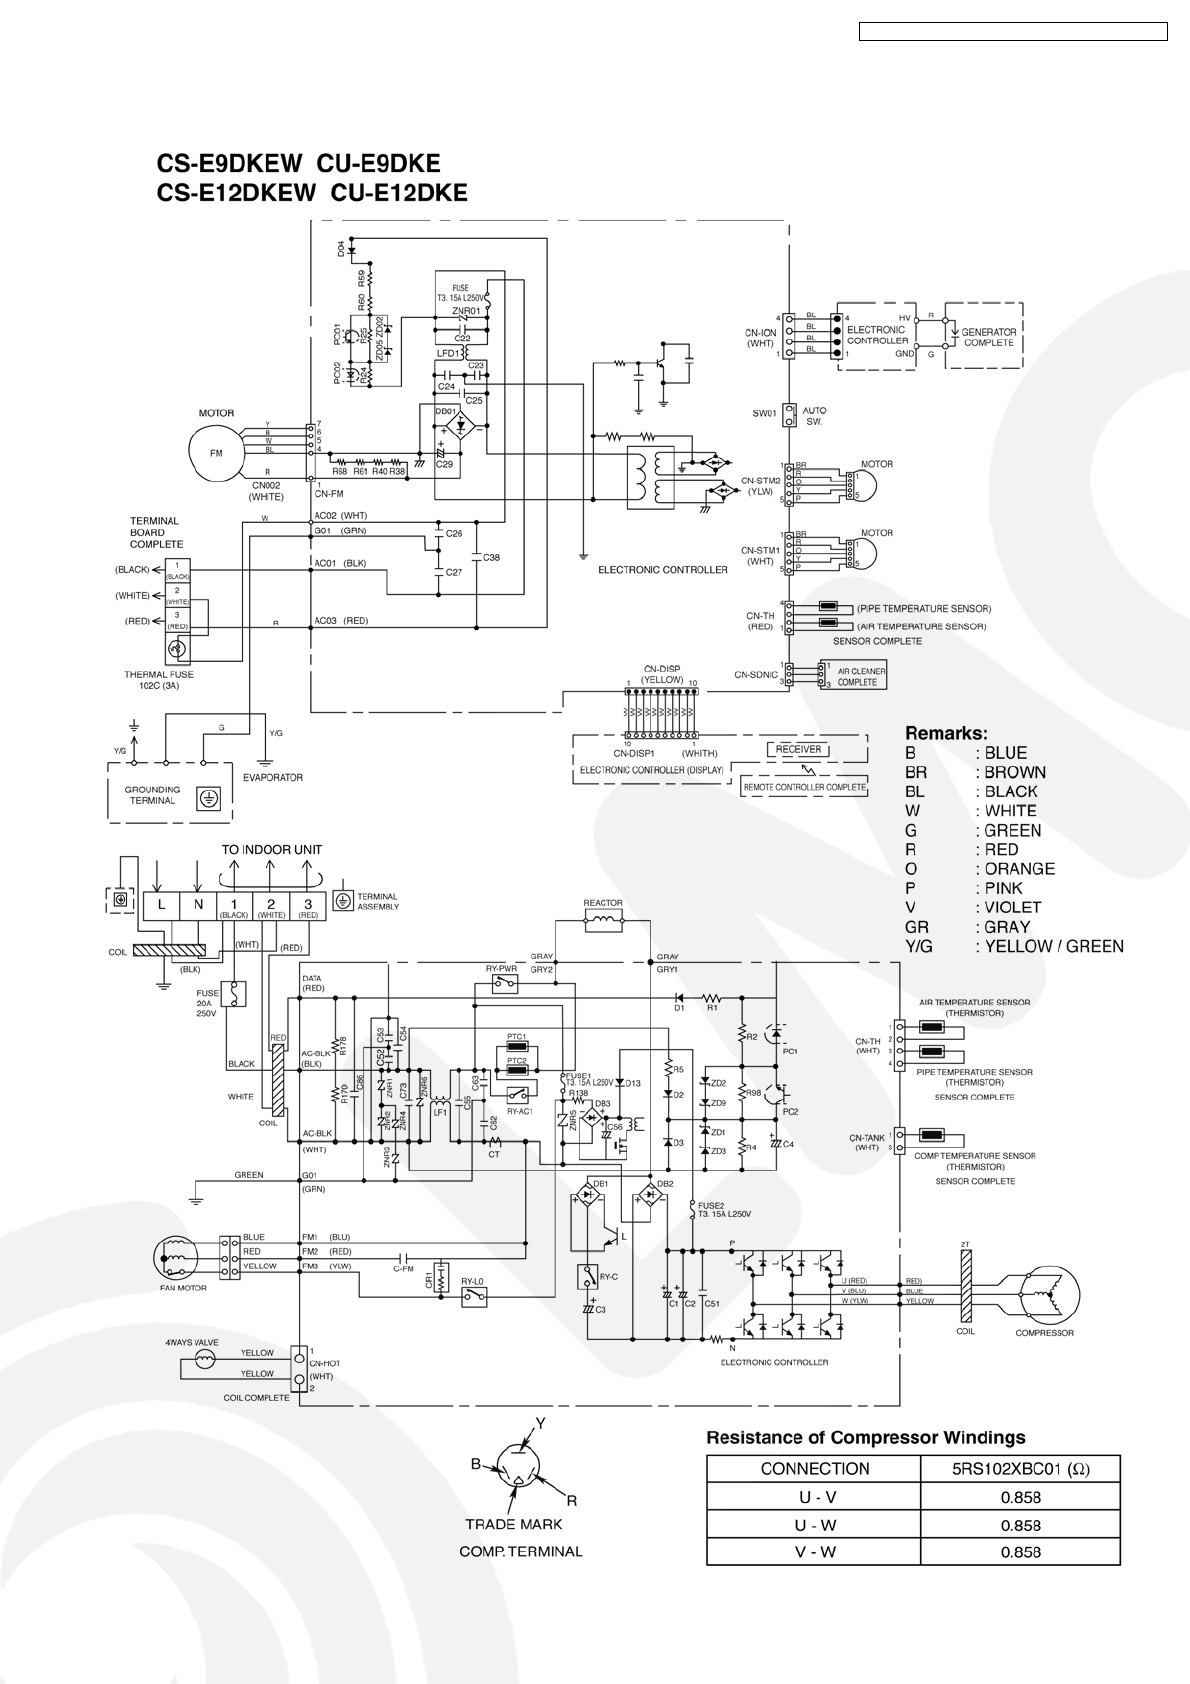 5bc1cf0d d725 4126 8b82 4c2e87dbfb59 bgf?resize=665%2C941 model hblg1200r room air conditioner wiring diagram model wiring  at soozxer.org